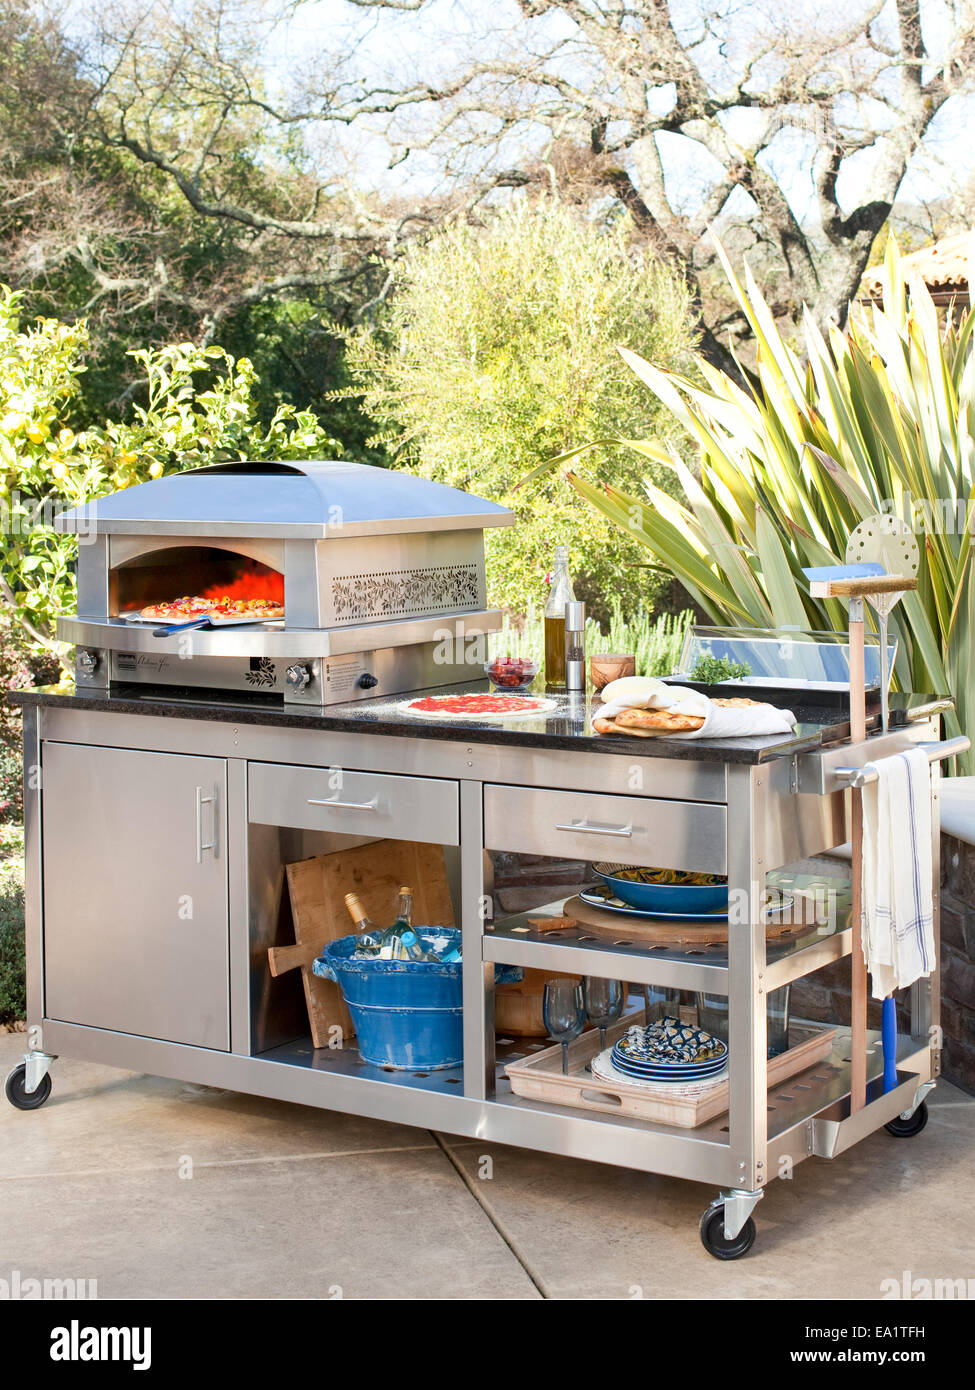 making pizza on an outdoor pizza oven - Stock Image